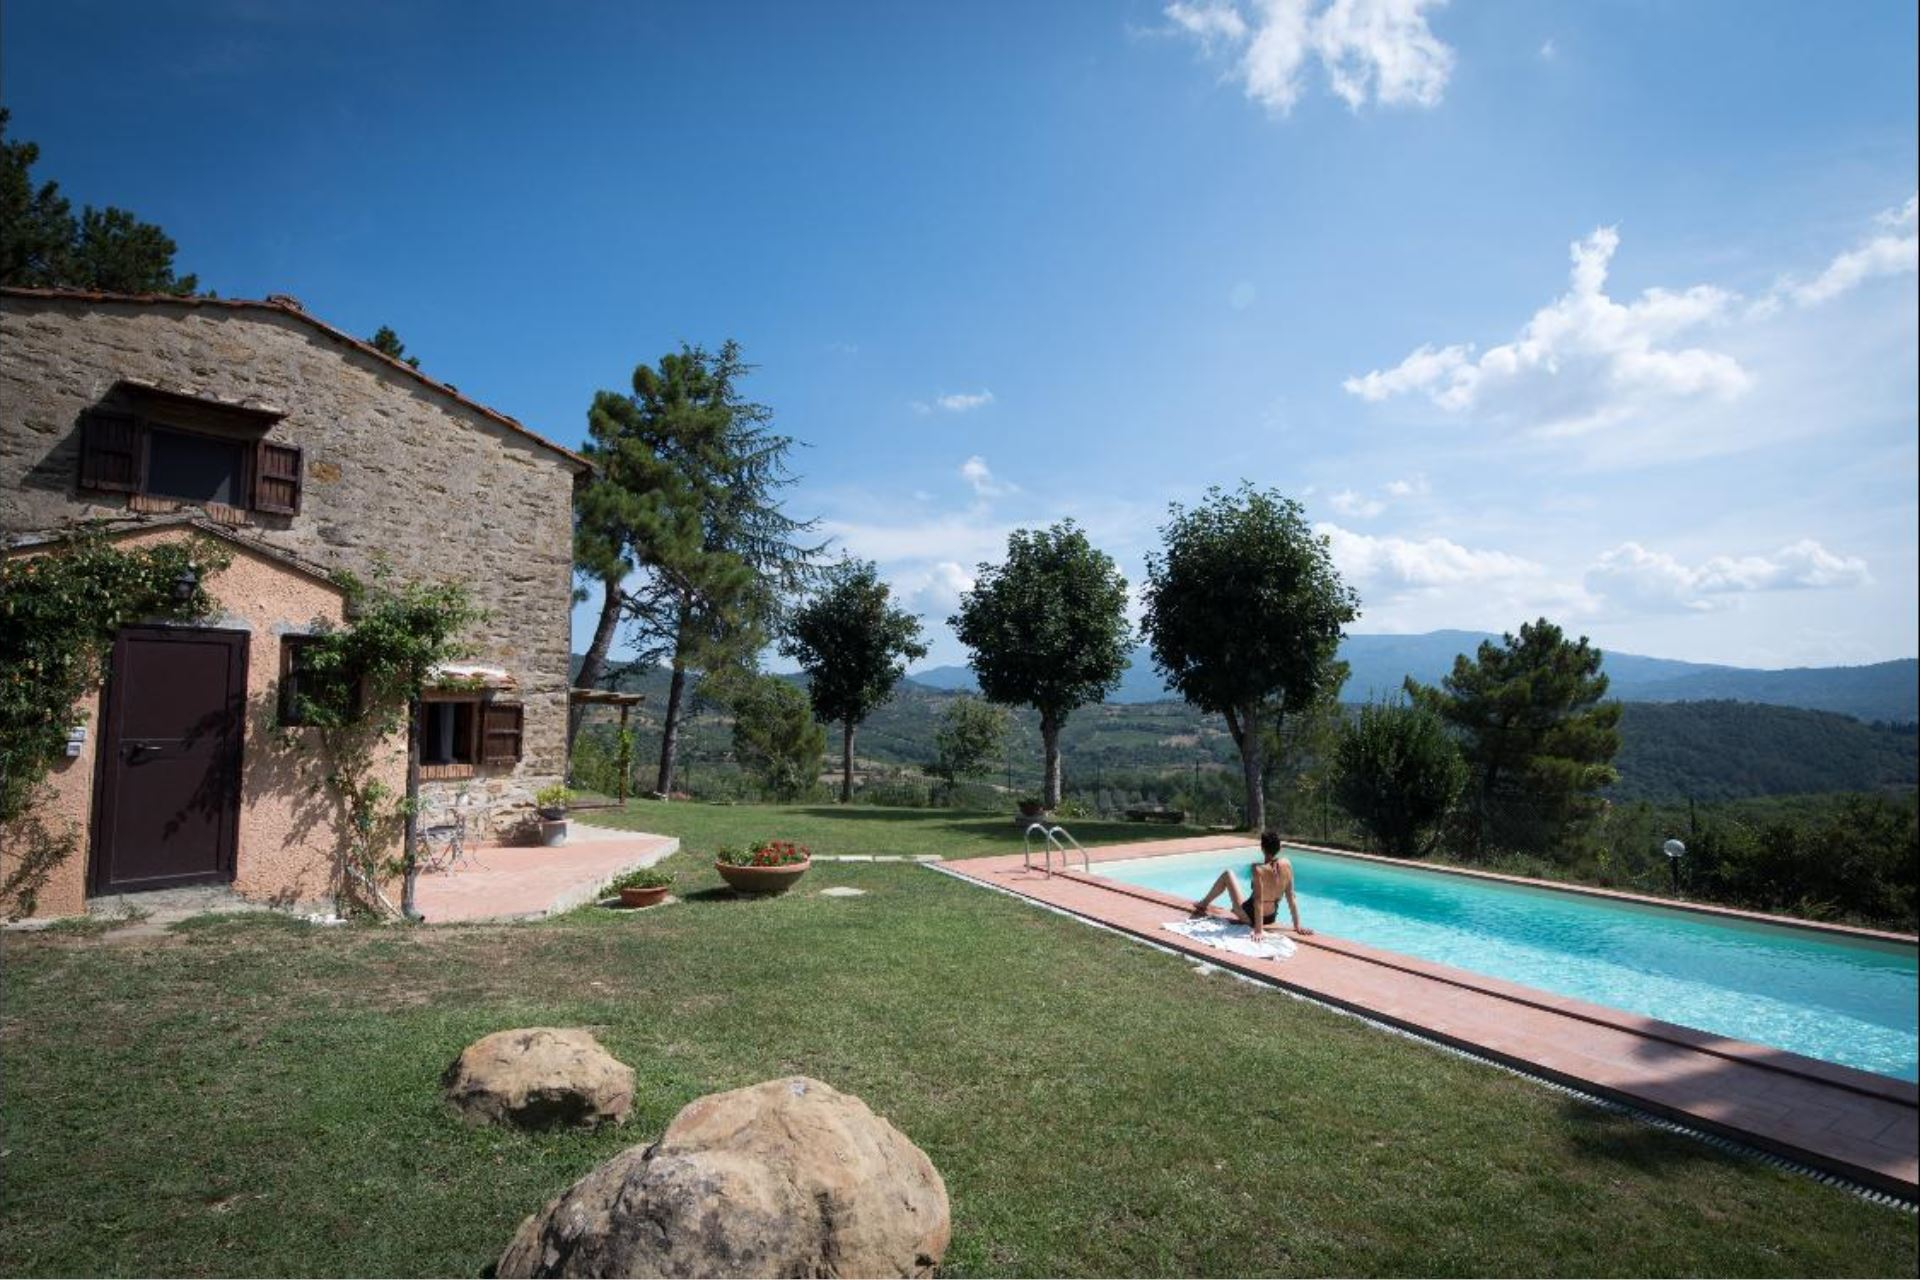 villa 2 bedrooms sleep 6 private pool tuscany poggio alla capanna